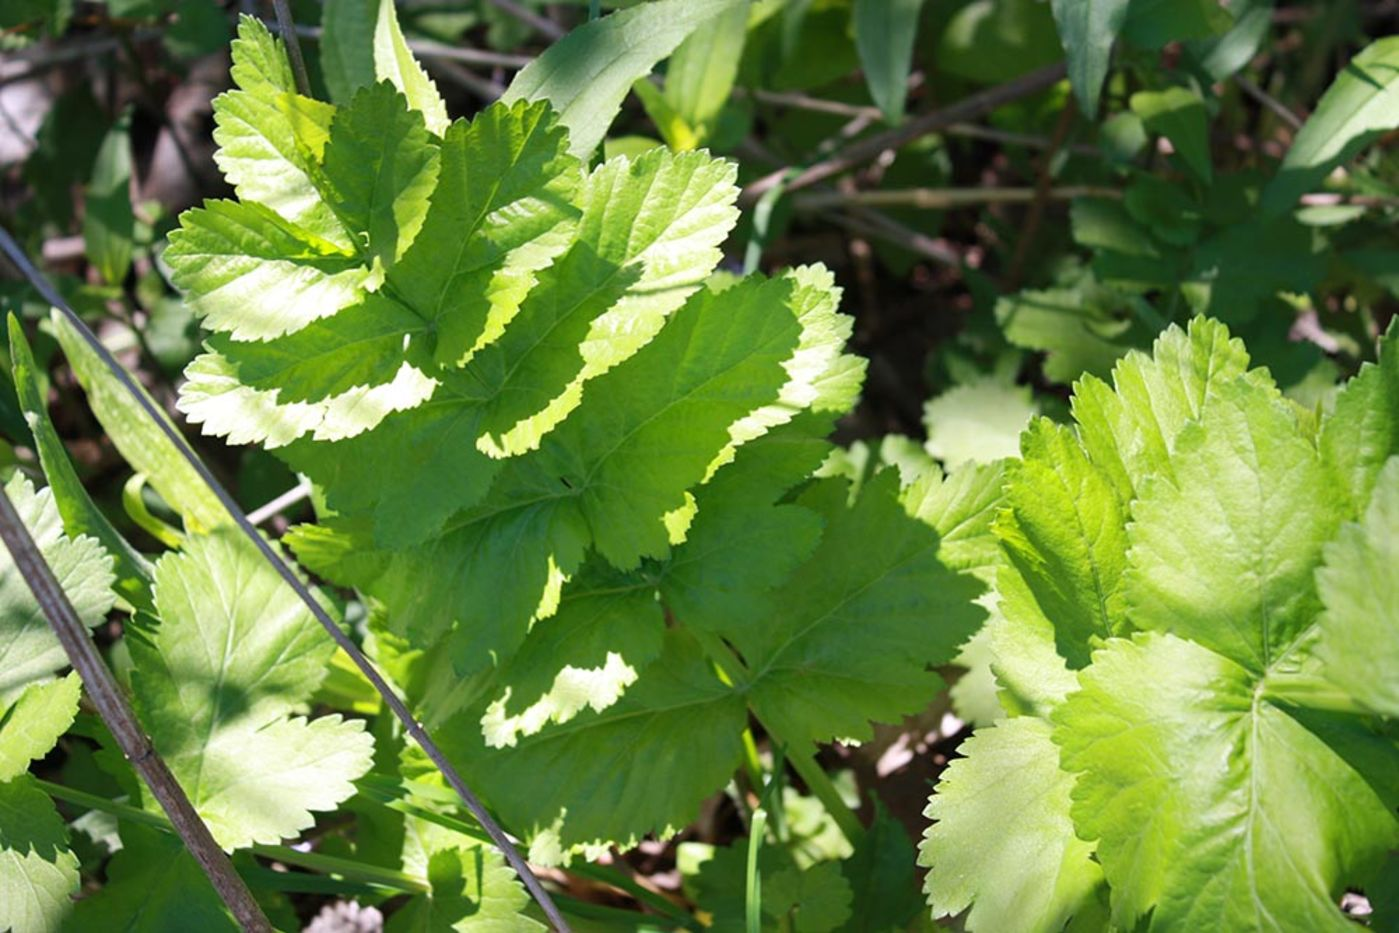 Green leaves with jagged edges